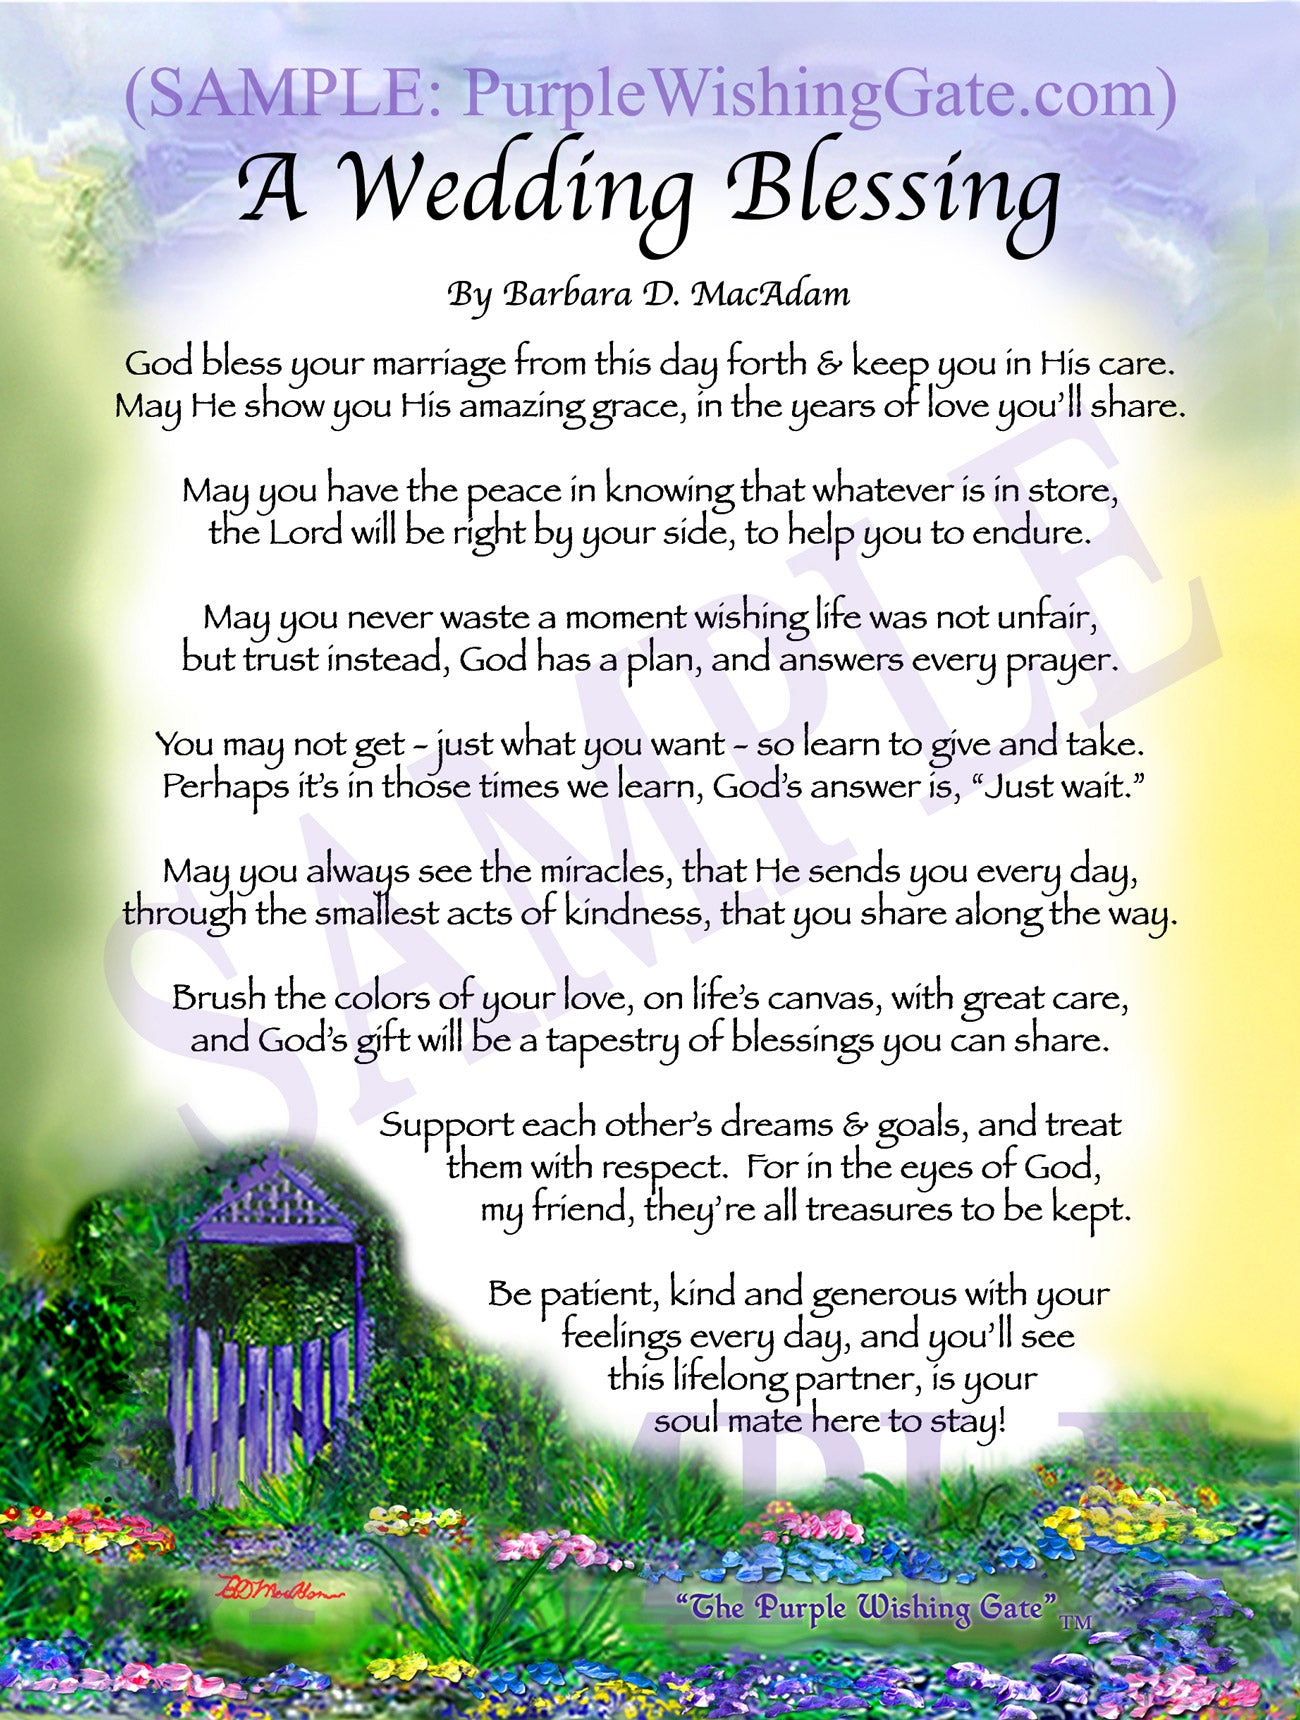 Wedding Blessing Gift For Sale Purplewishinggate Com Www